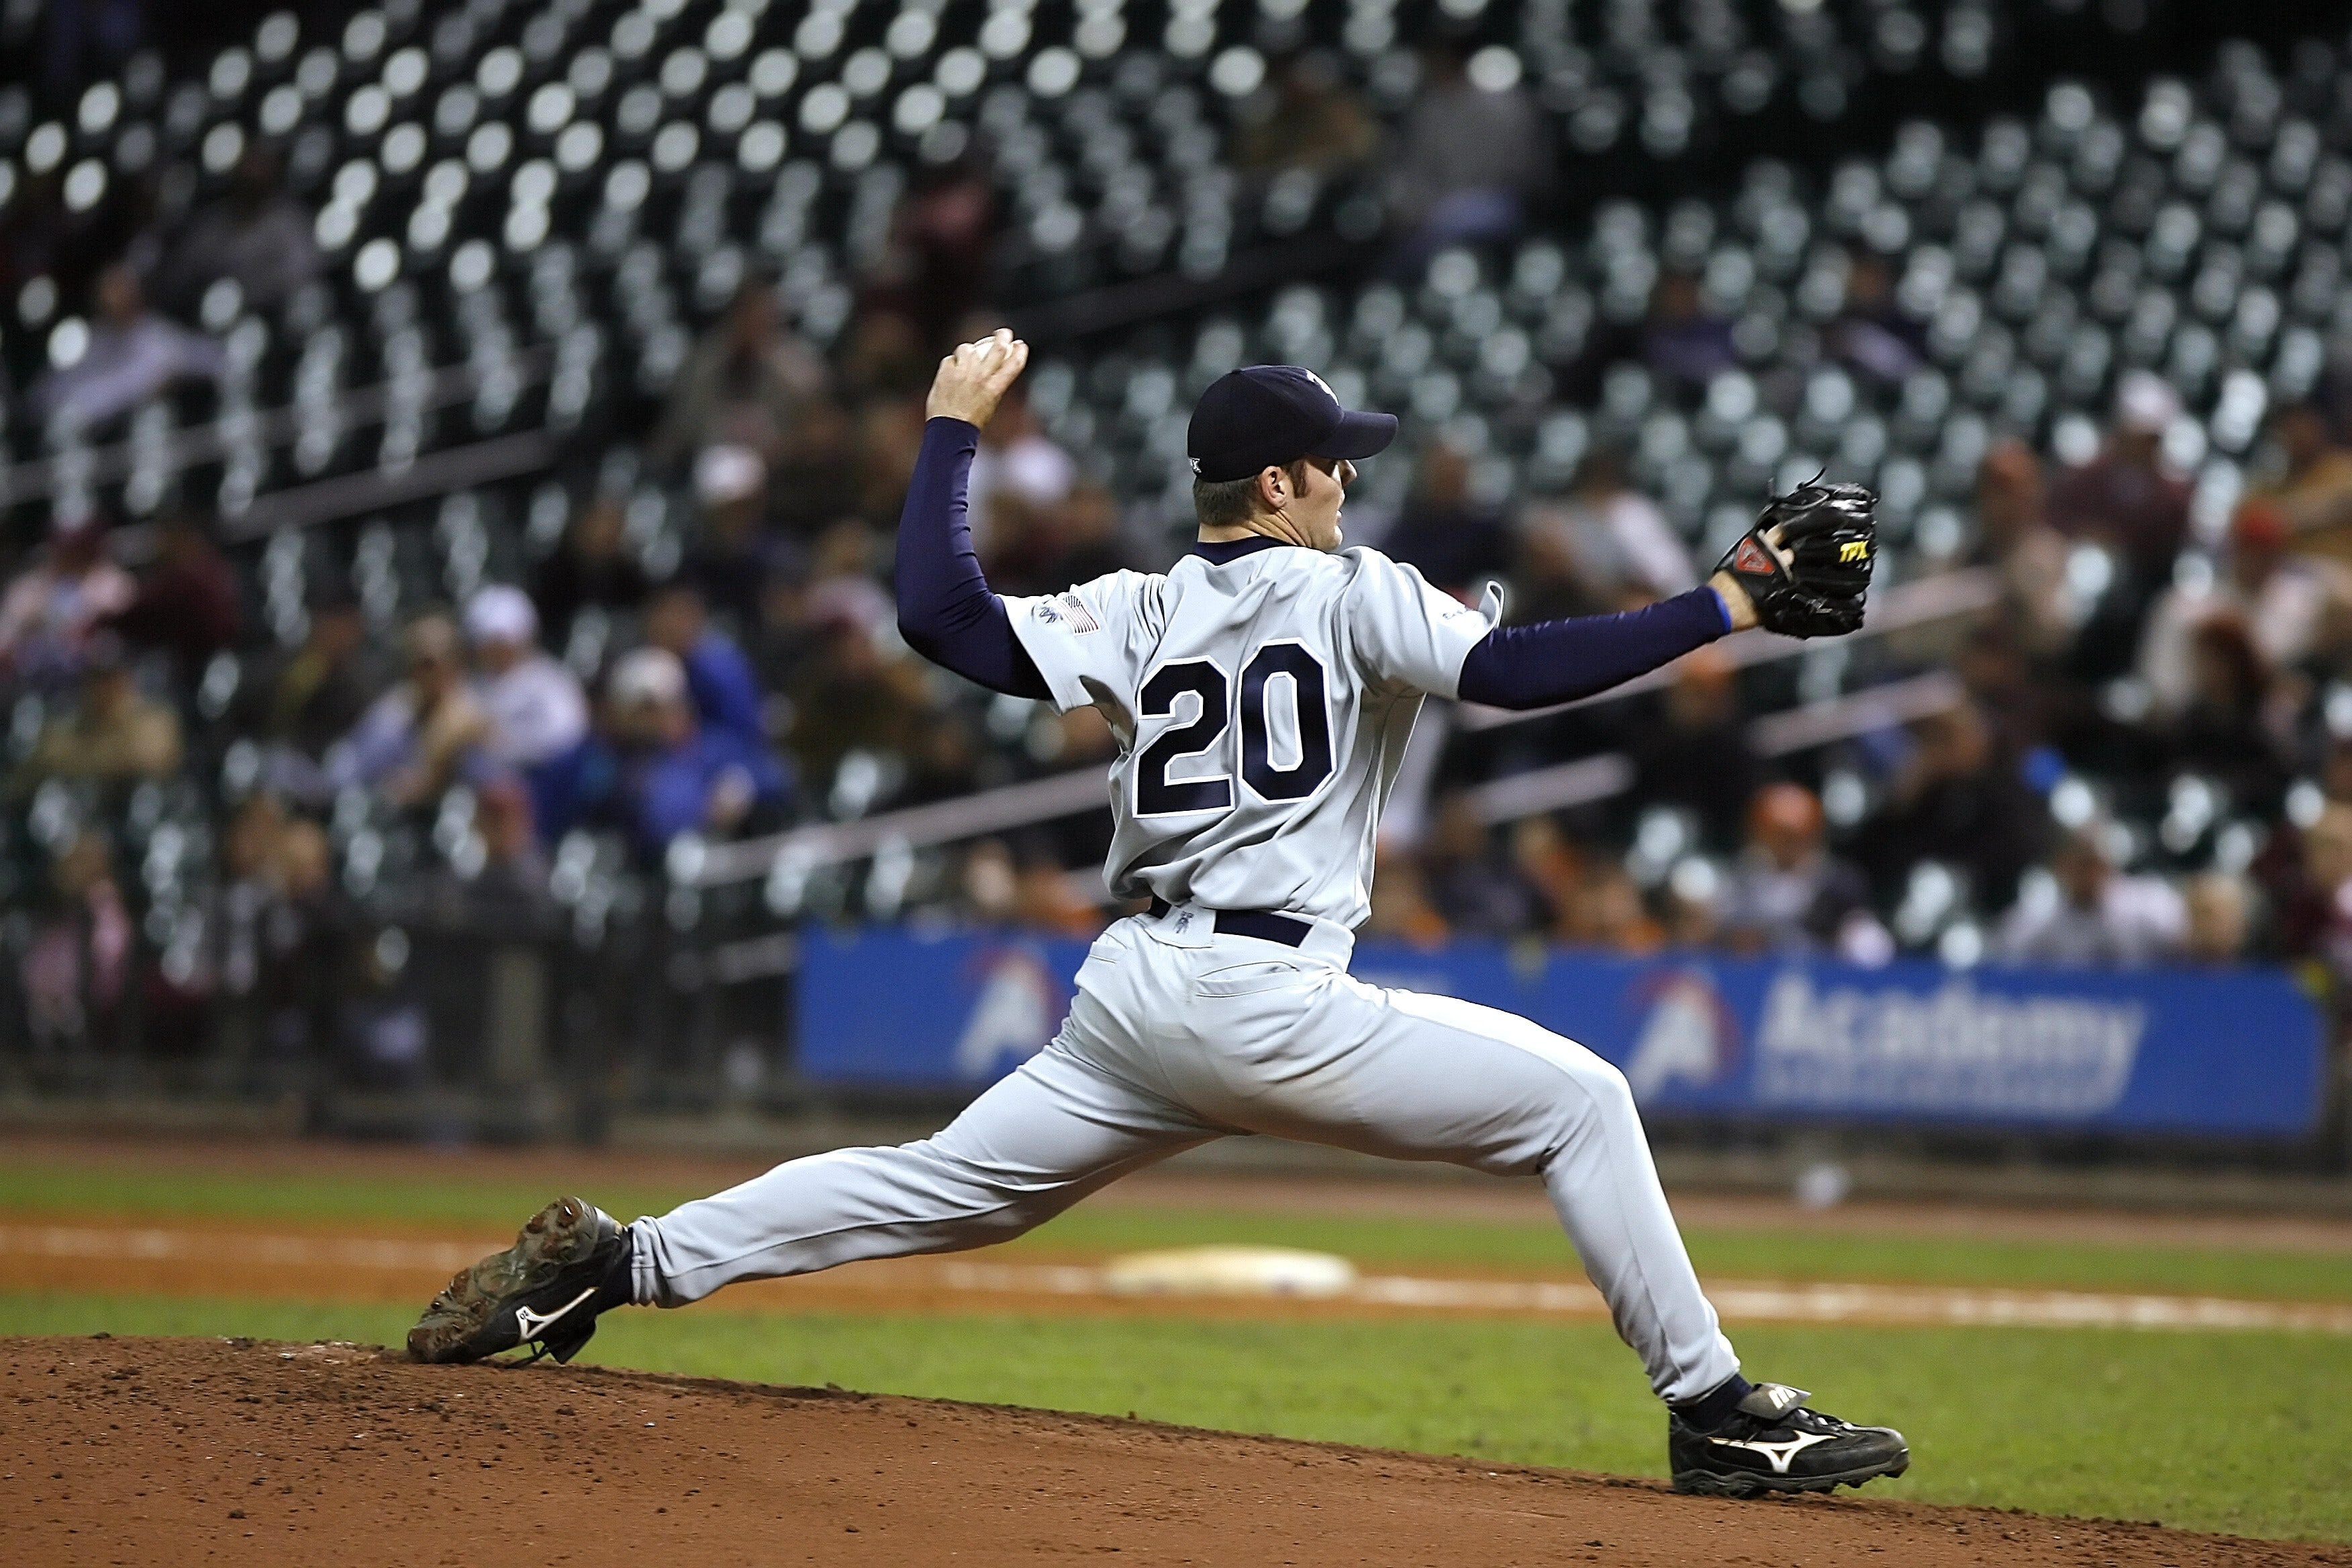 selective-focus-of-baseball-pitcher-in-20-jersey-about-to-163487